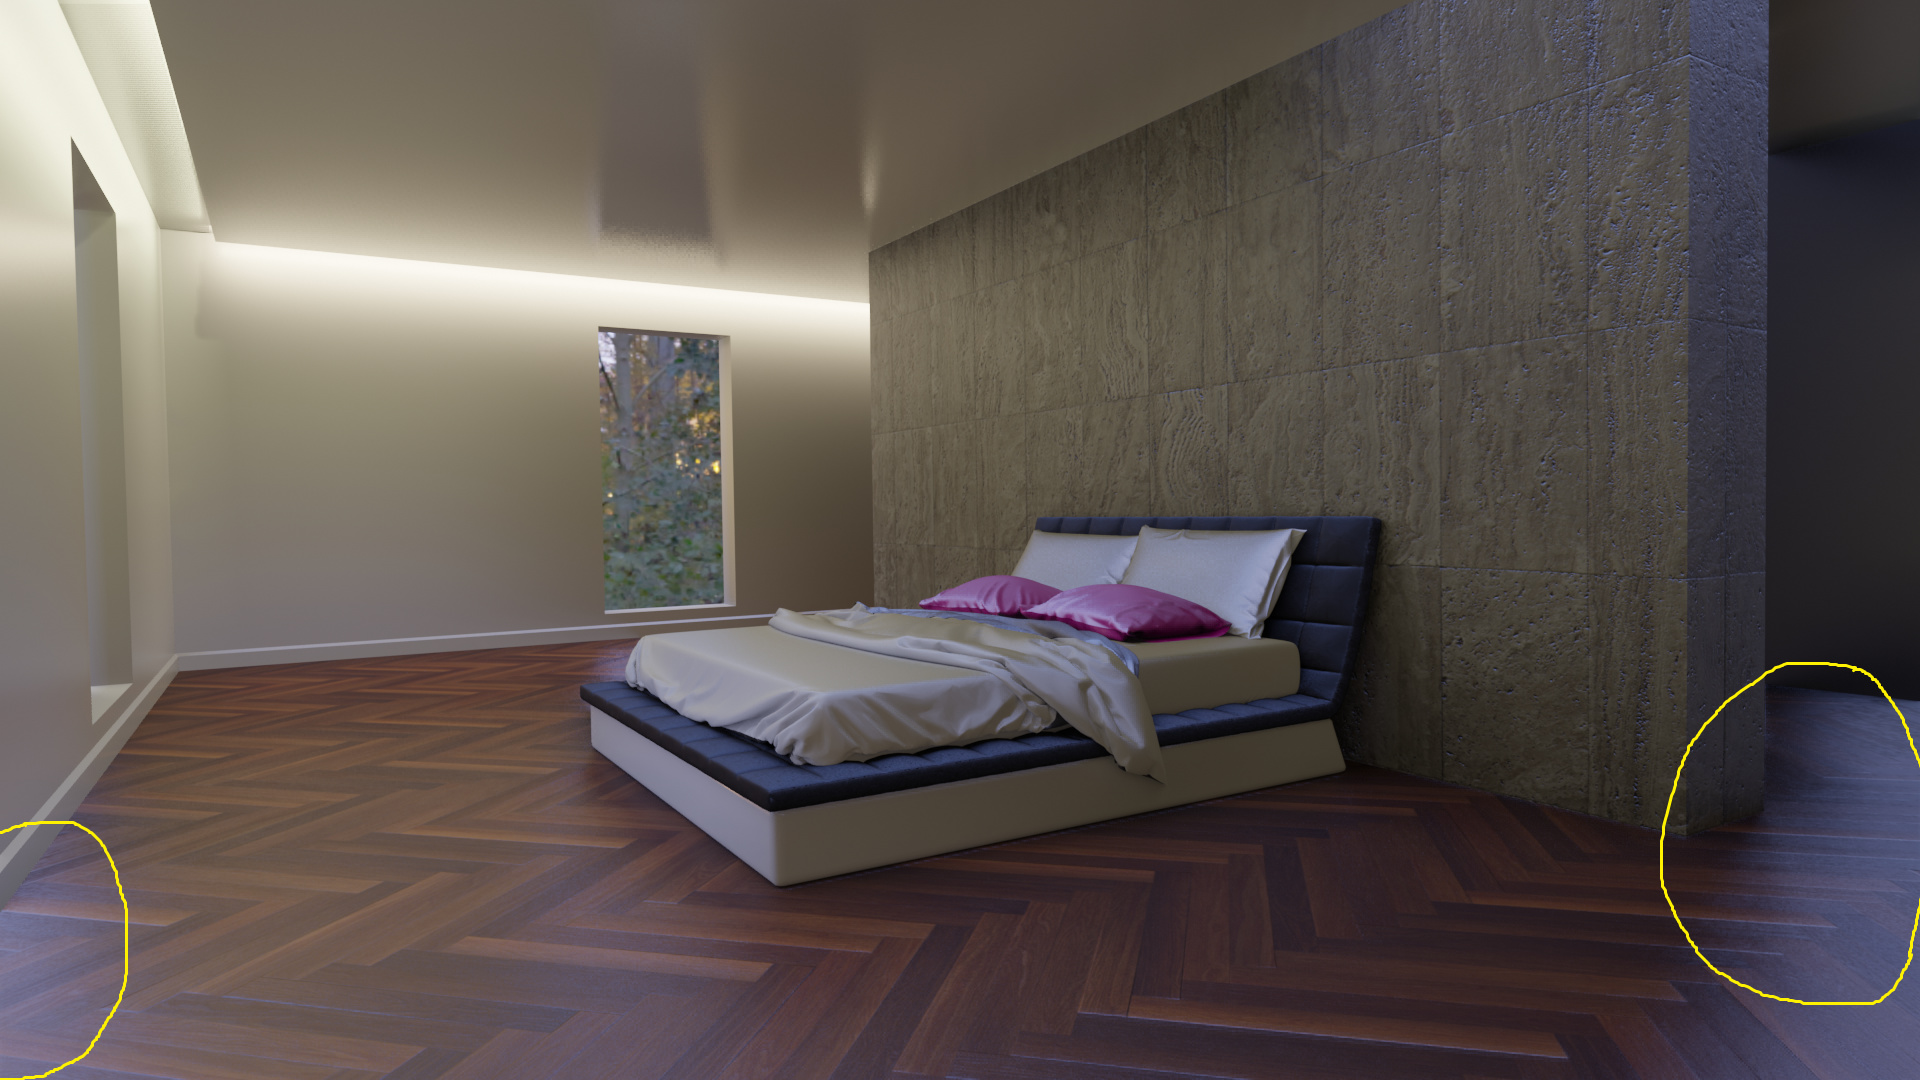 Easy Solutions to Interior Lighting Problems